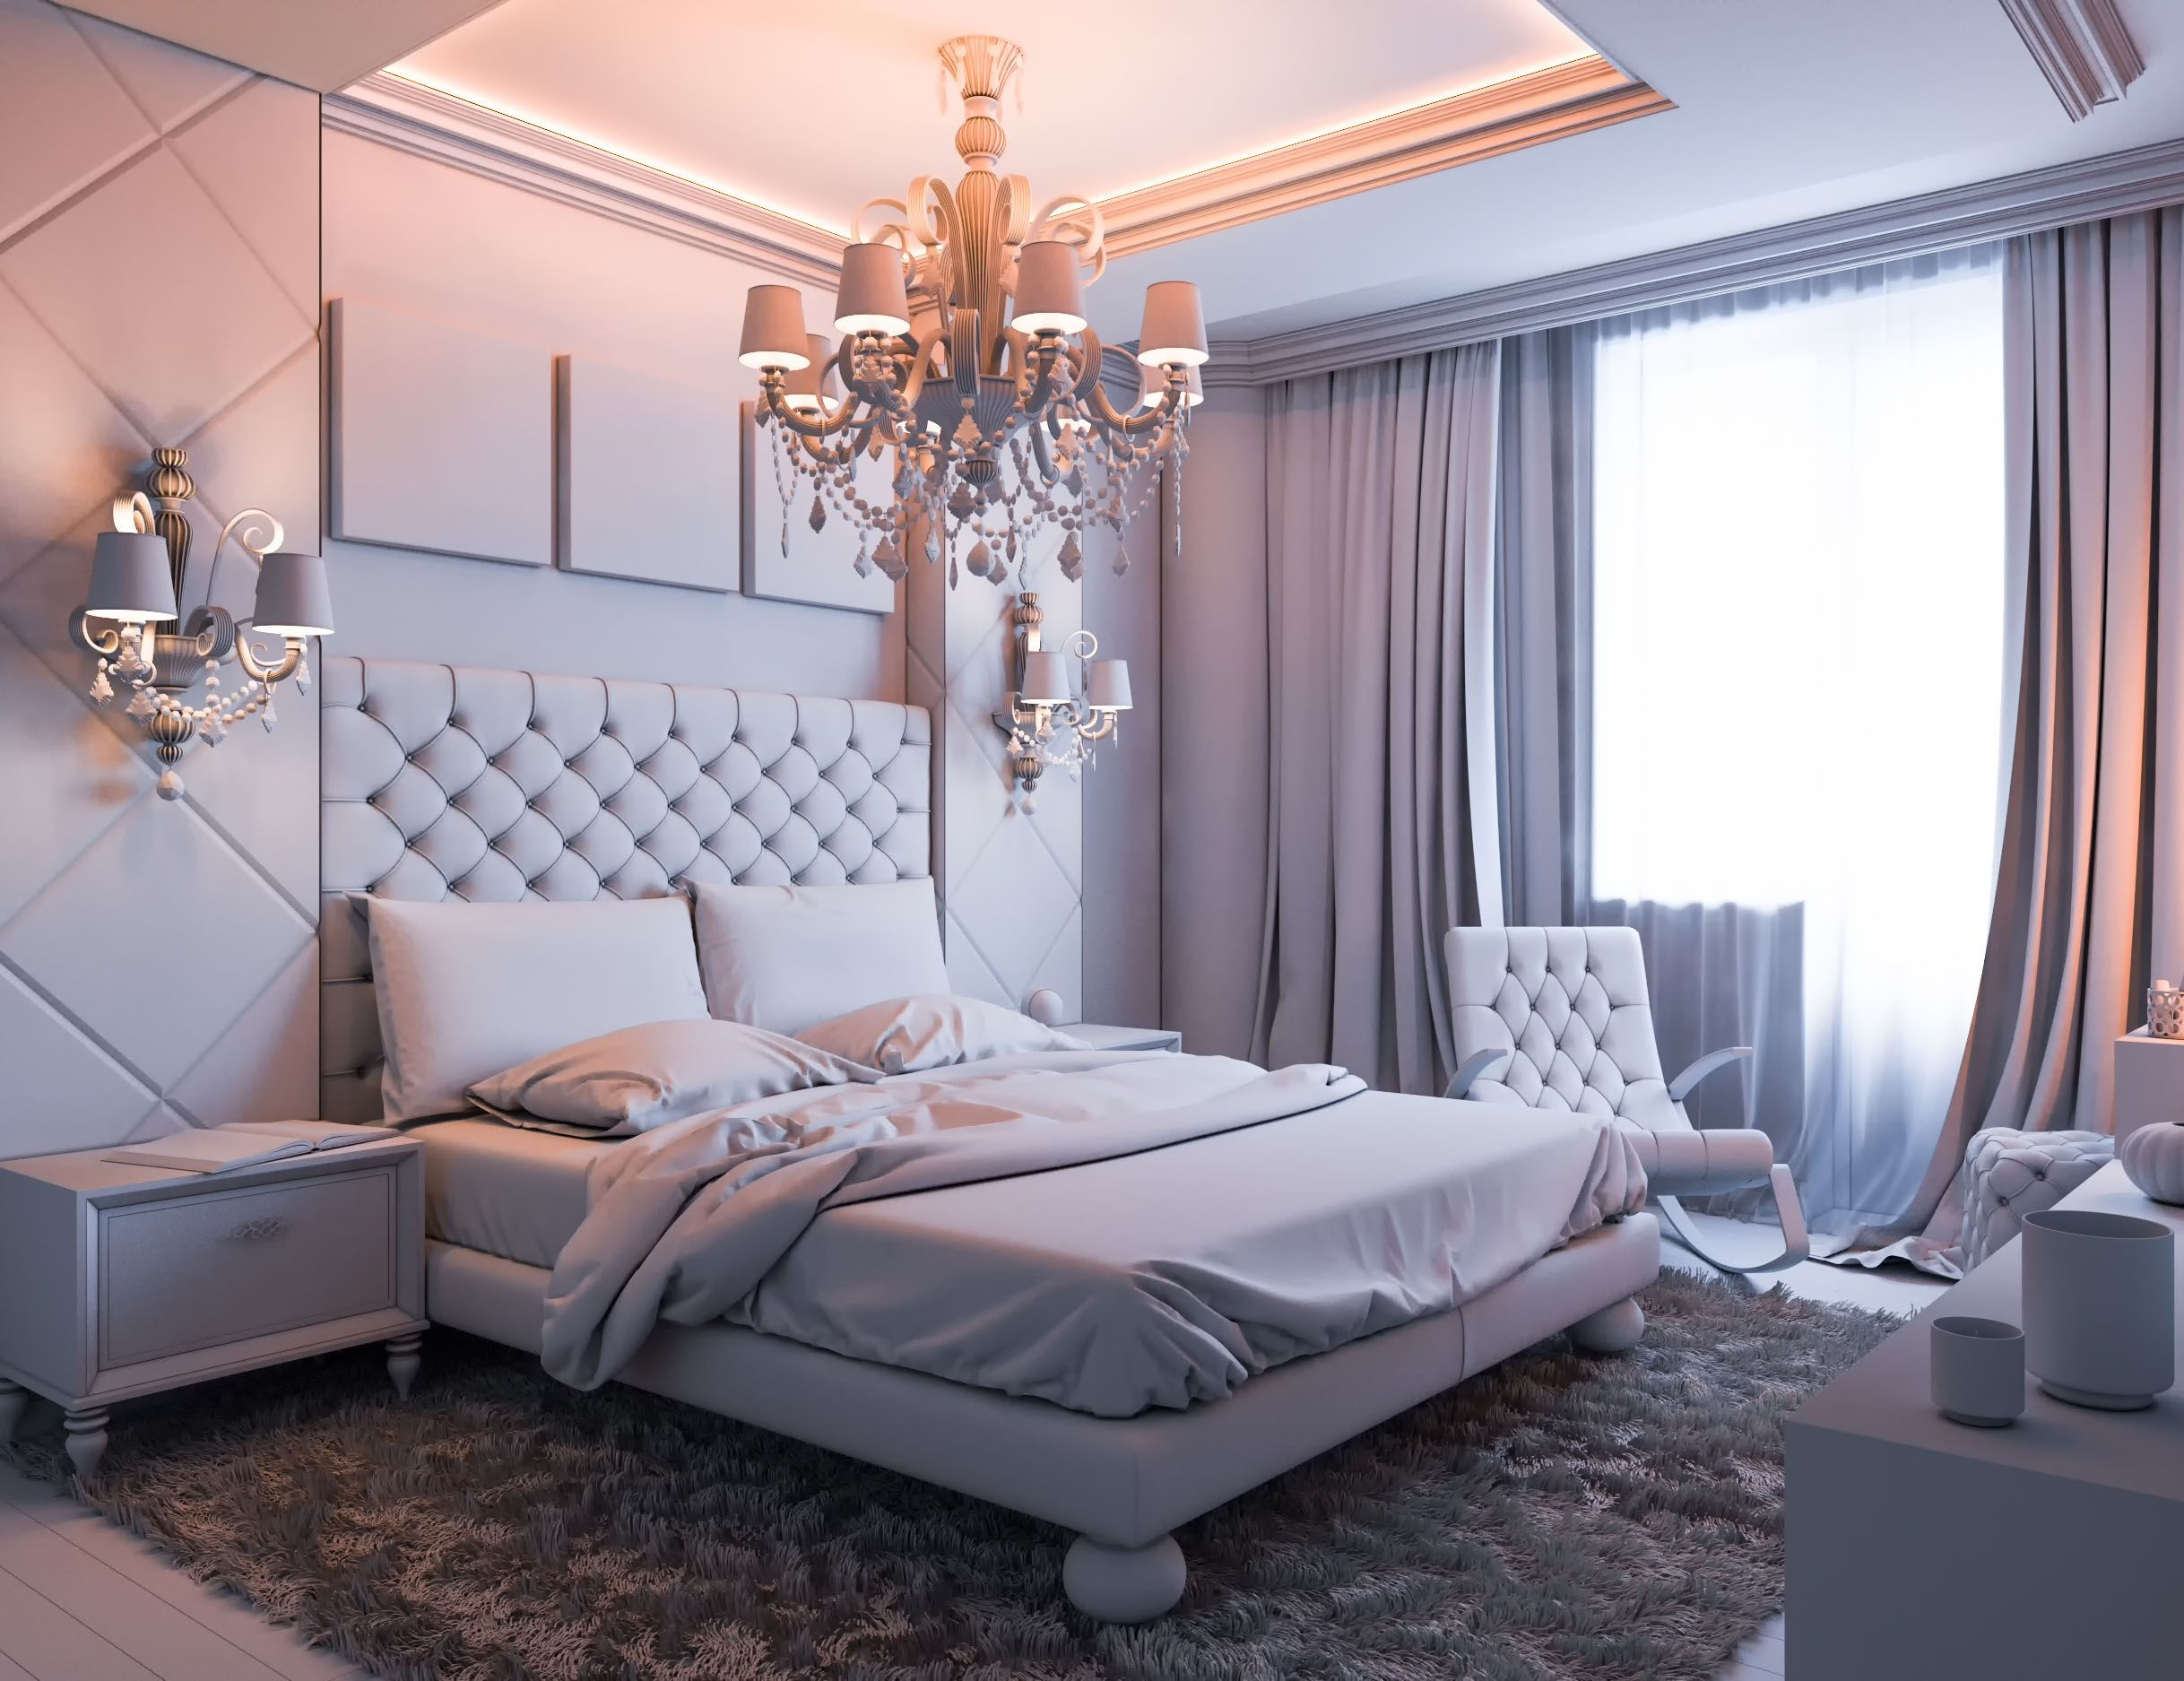 10 Romantic Bedroom Ideas for Couples in Love | Bedroom ...